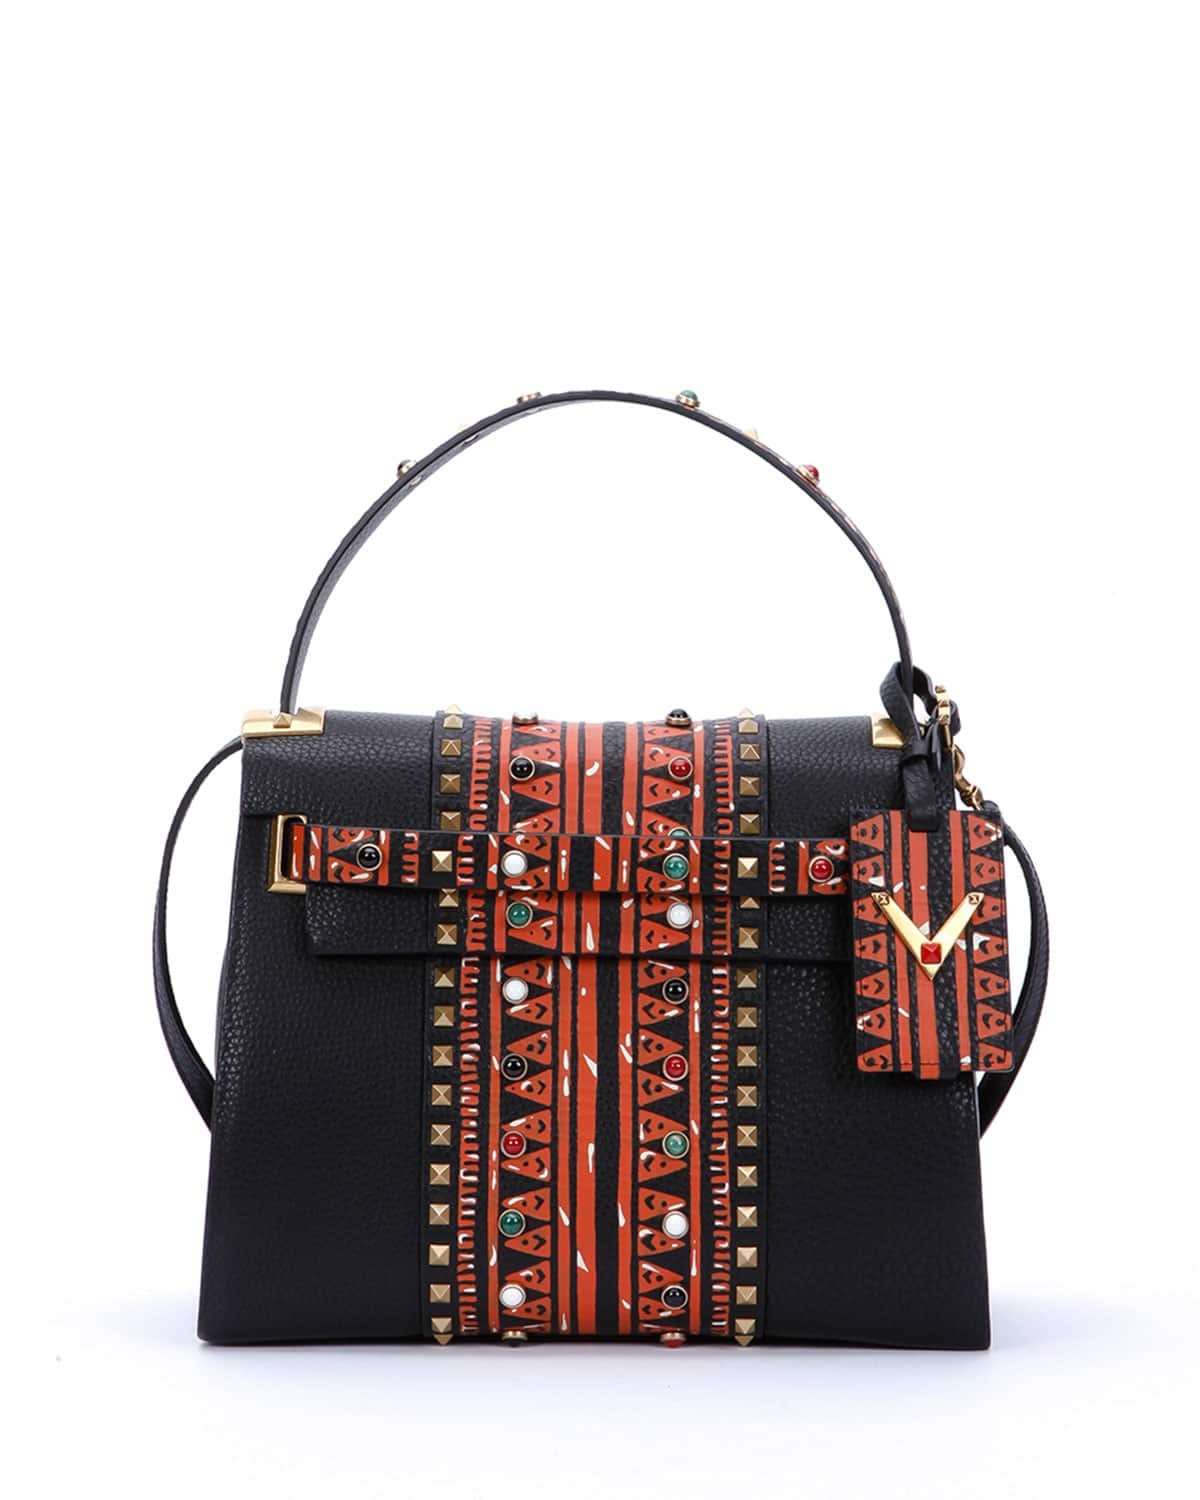 Valentino Spring/Summer 2016 Bag Collection